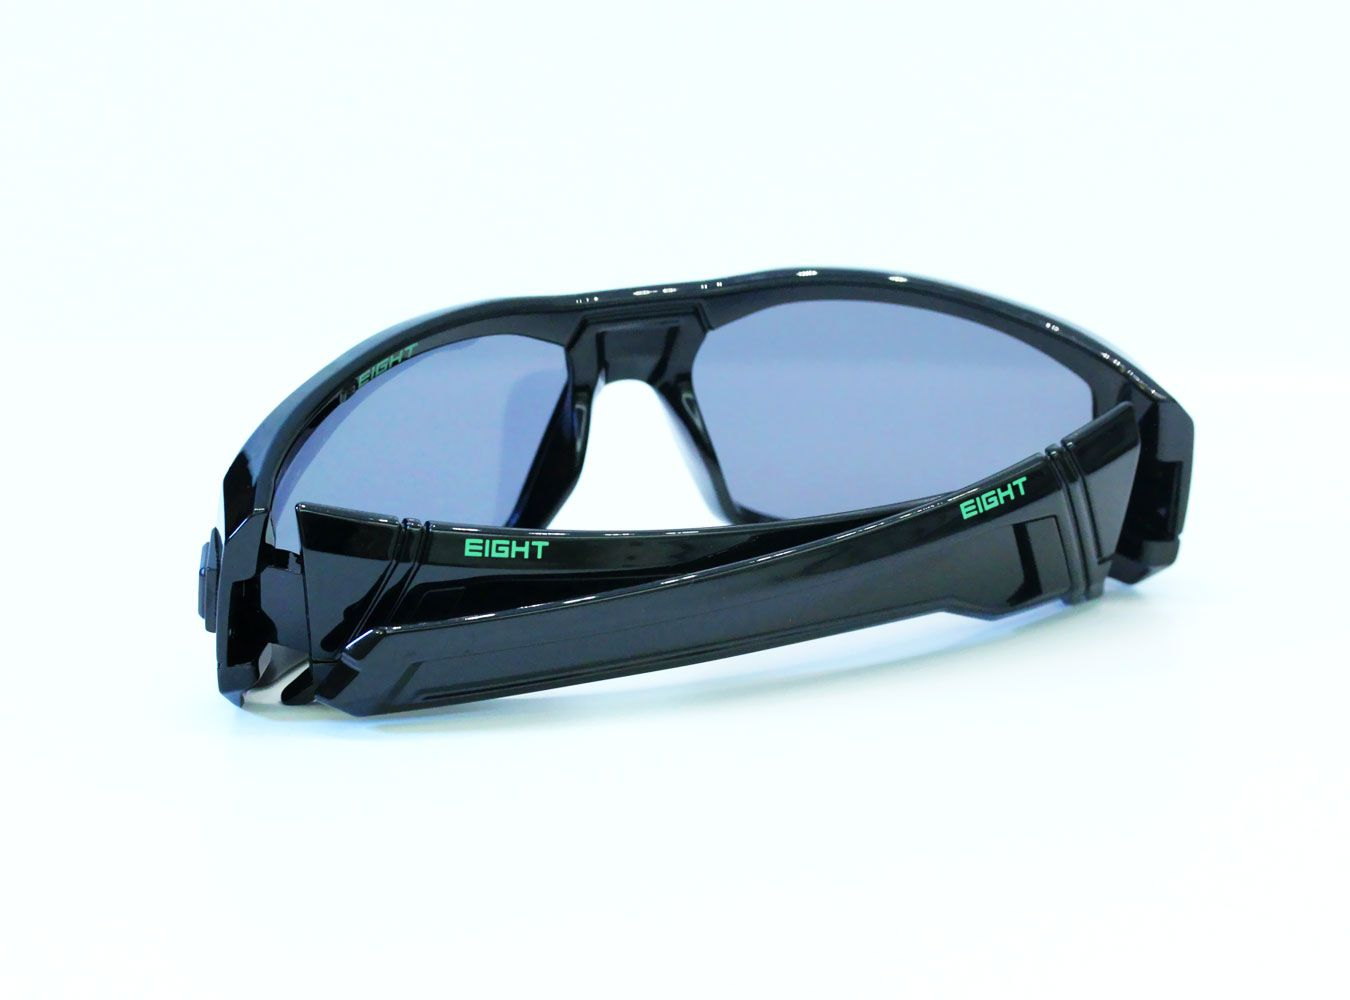 7660d43e3b Glossy Black Green V.1 from EIGHT Eyewear WWW.IWEAR8.COM  8eyewear   sunglasses  shades  cool  mensfashion  fashion  style  summer  eight  sports   design